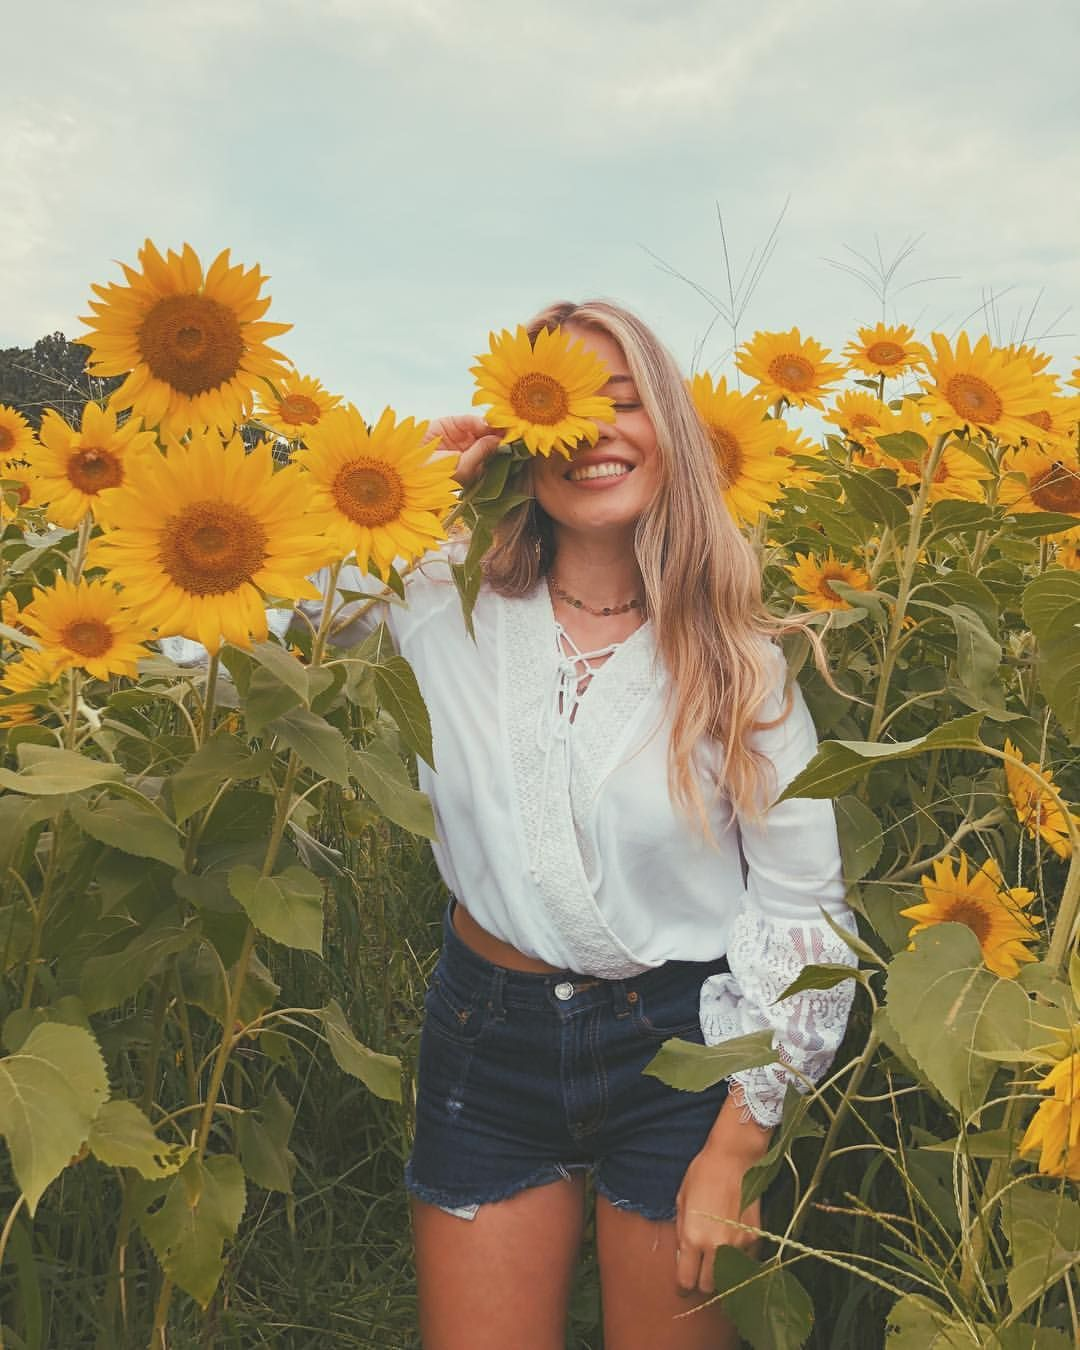 "Monica on Instagram: """"Despite knowing they won't be here for long they still choose to live their brightest lives -sunflowers"" �� Head over to IGTV to watch the…"""